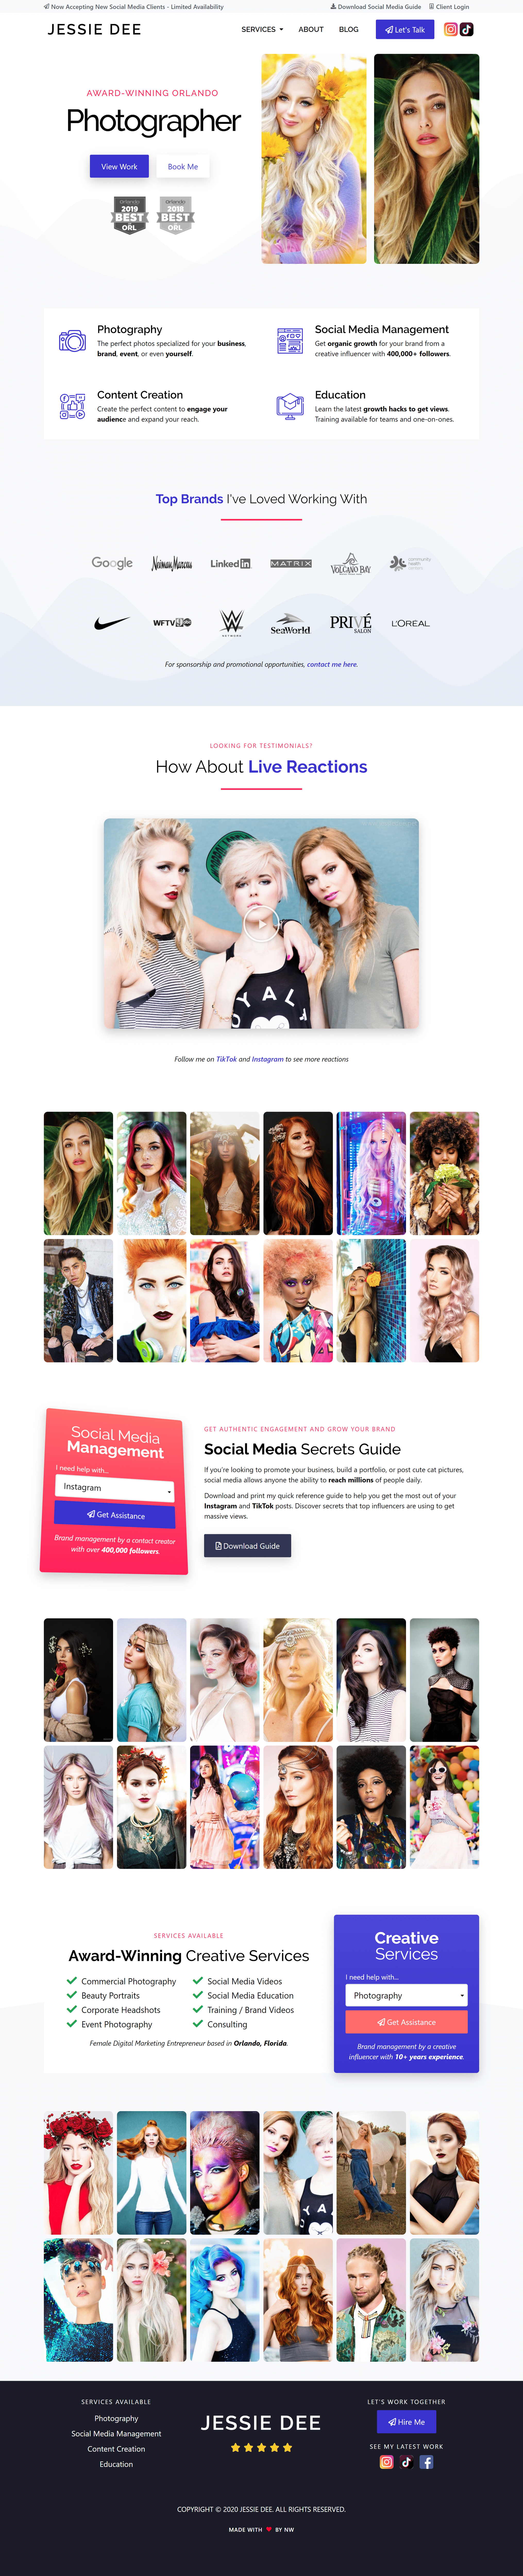 Web Design and Web Marketing for Jessie Dee Photography